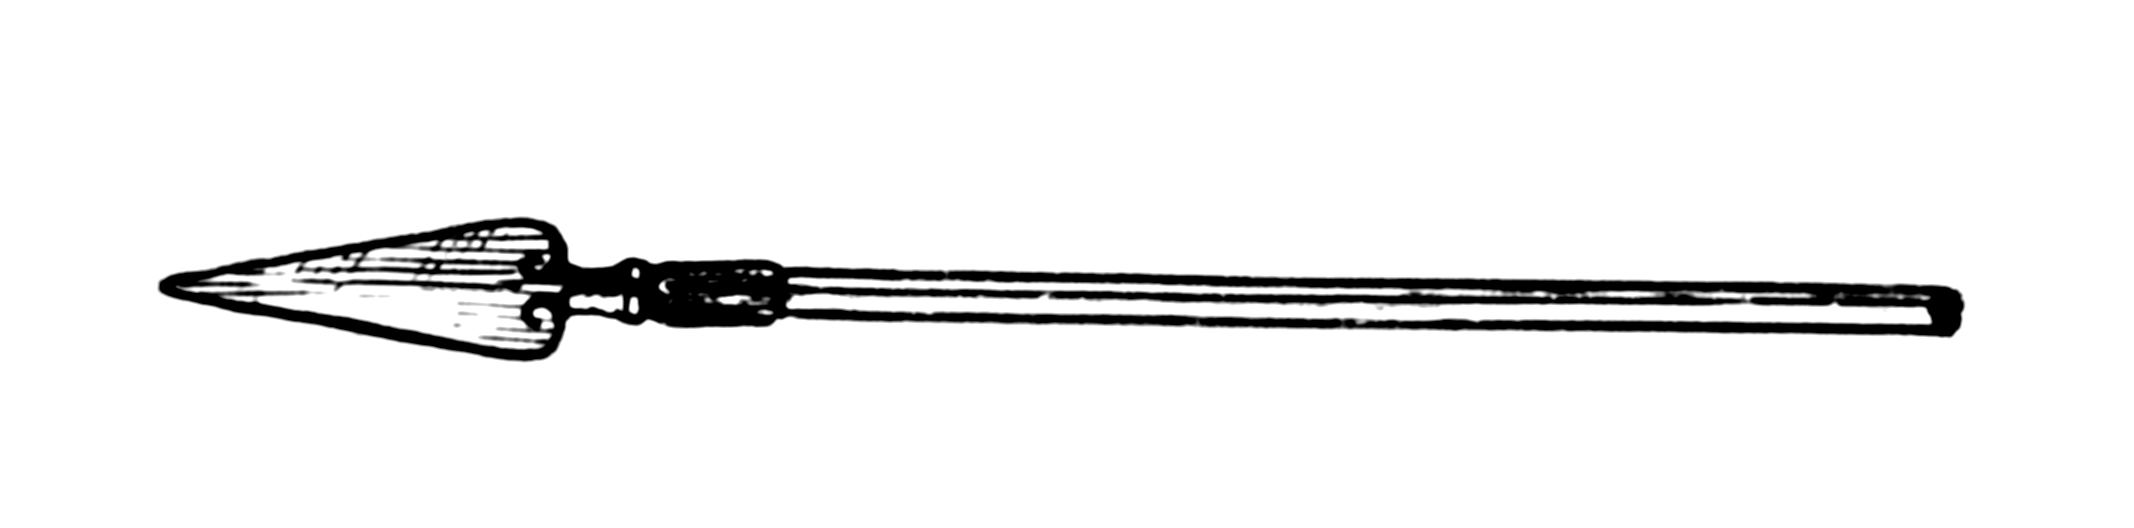 File:Spear (PSF).png - Wikimedia Commons